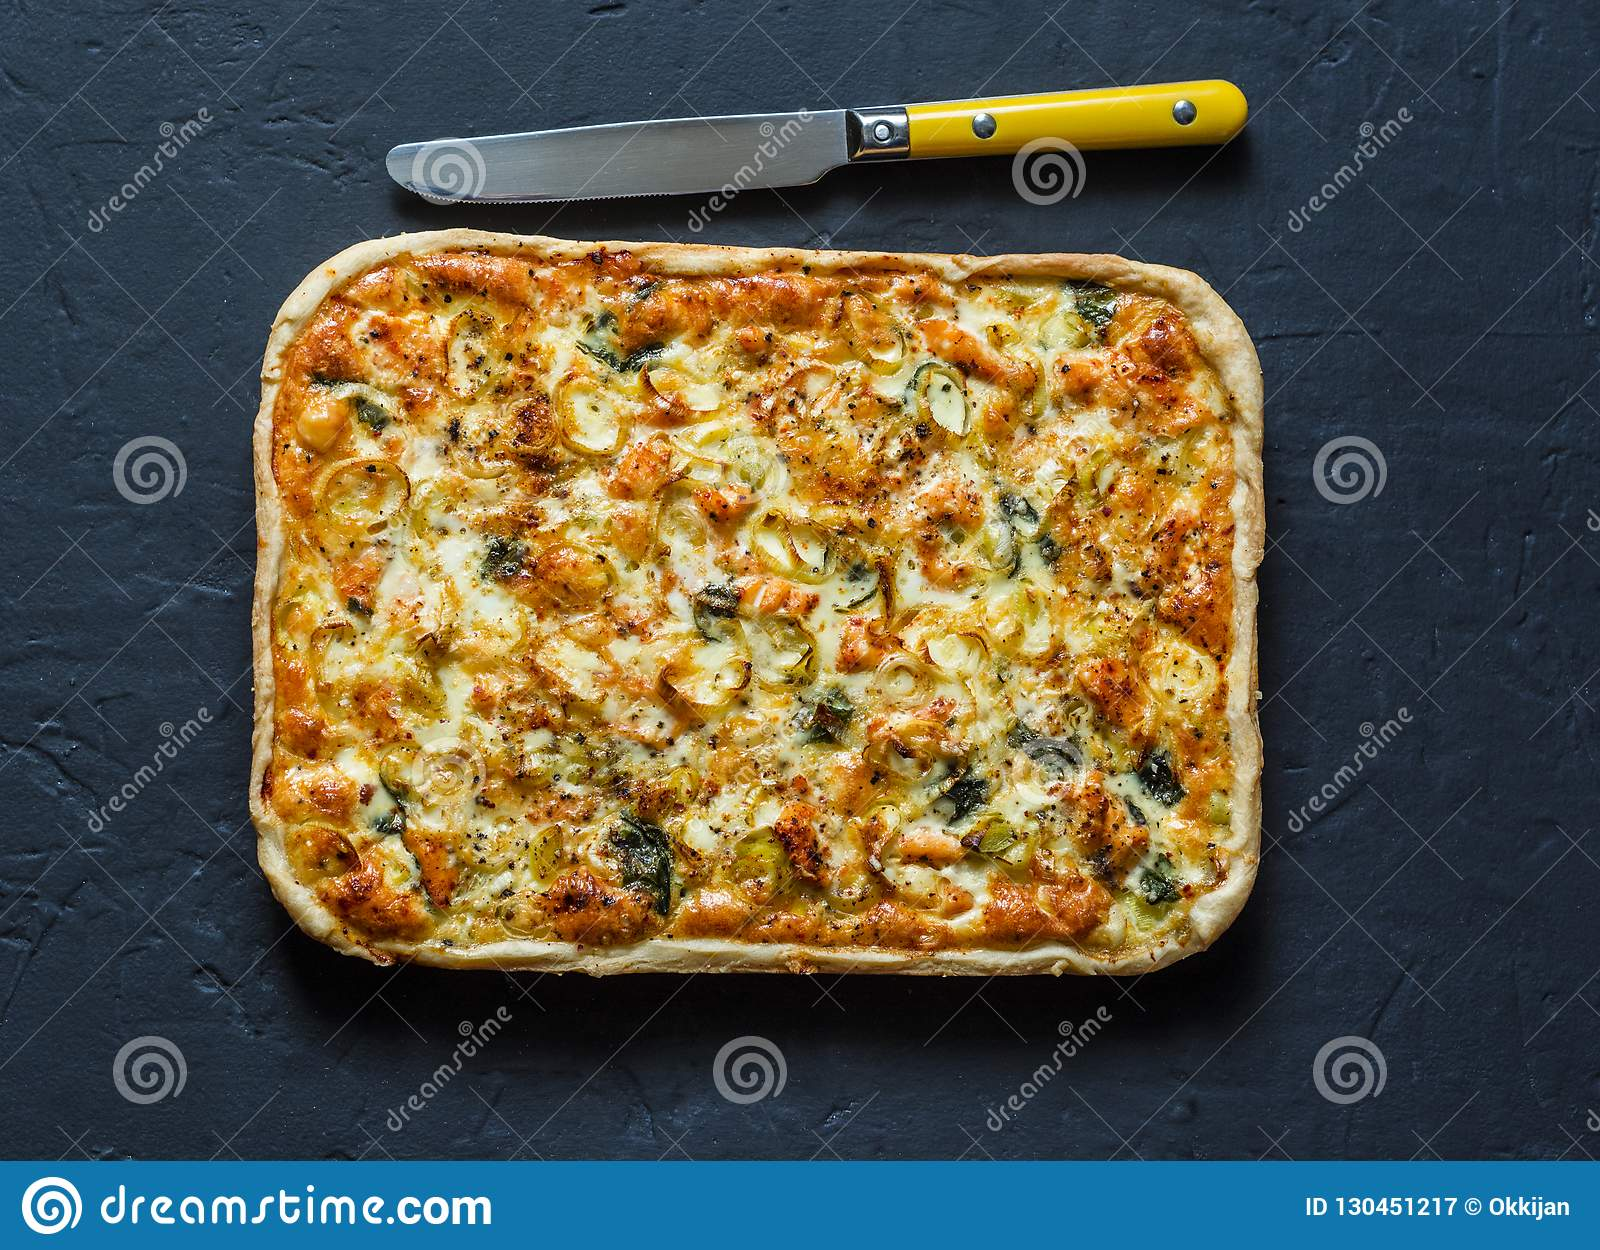 Salmon, leek, spinach, cheese puff pastry pie on dark background